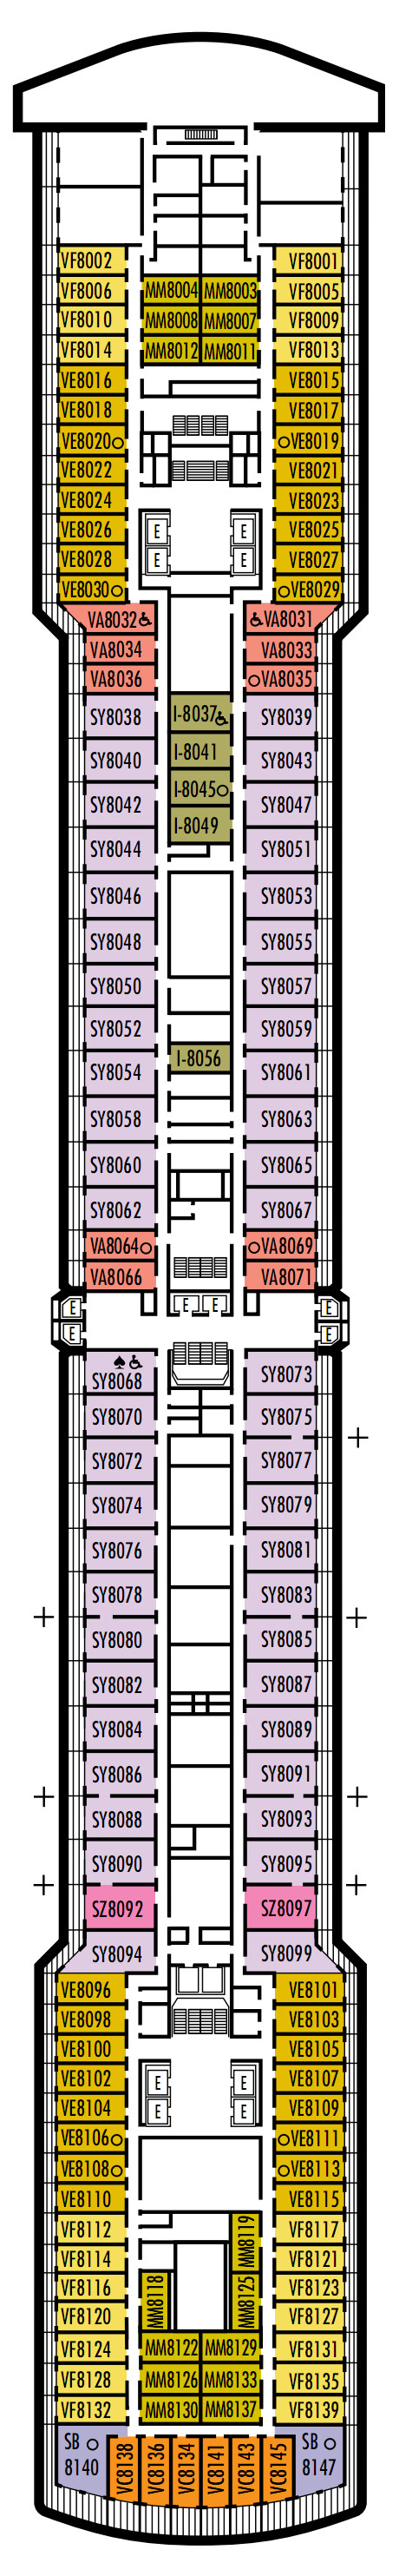 Zuiderdam Deck 8 - Navigation Deck layout